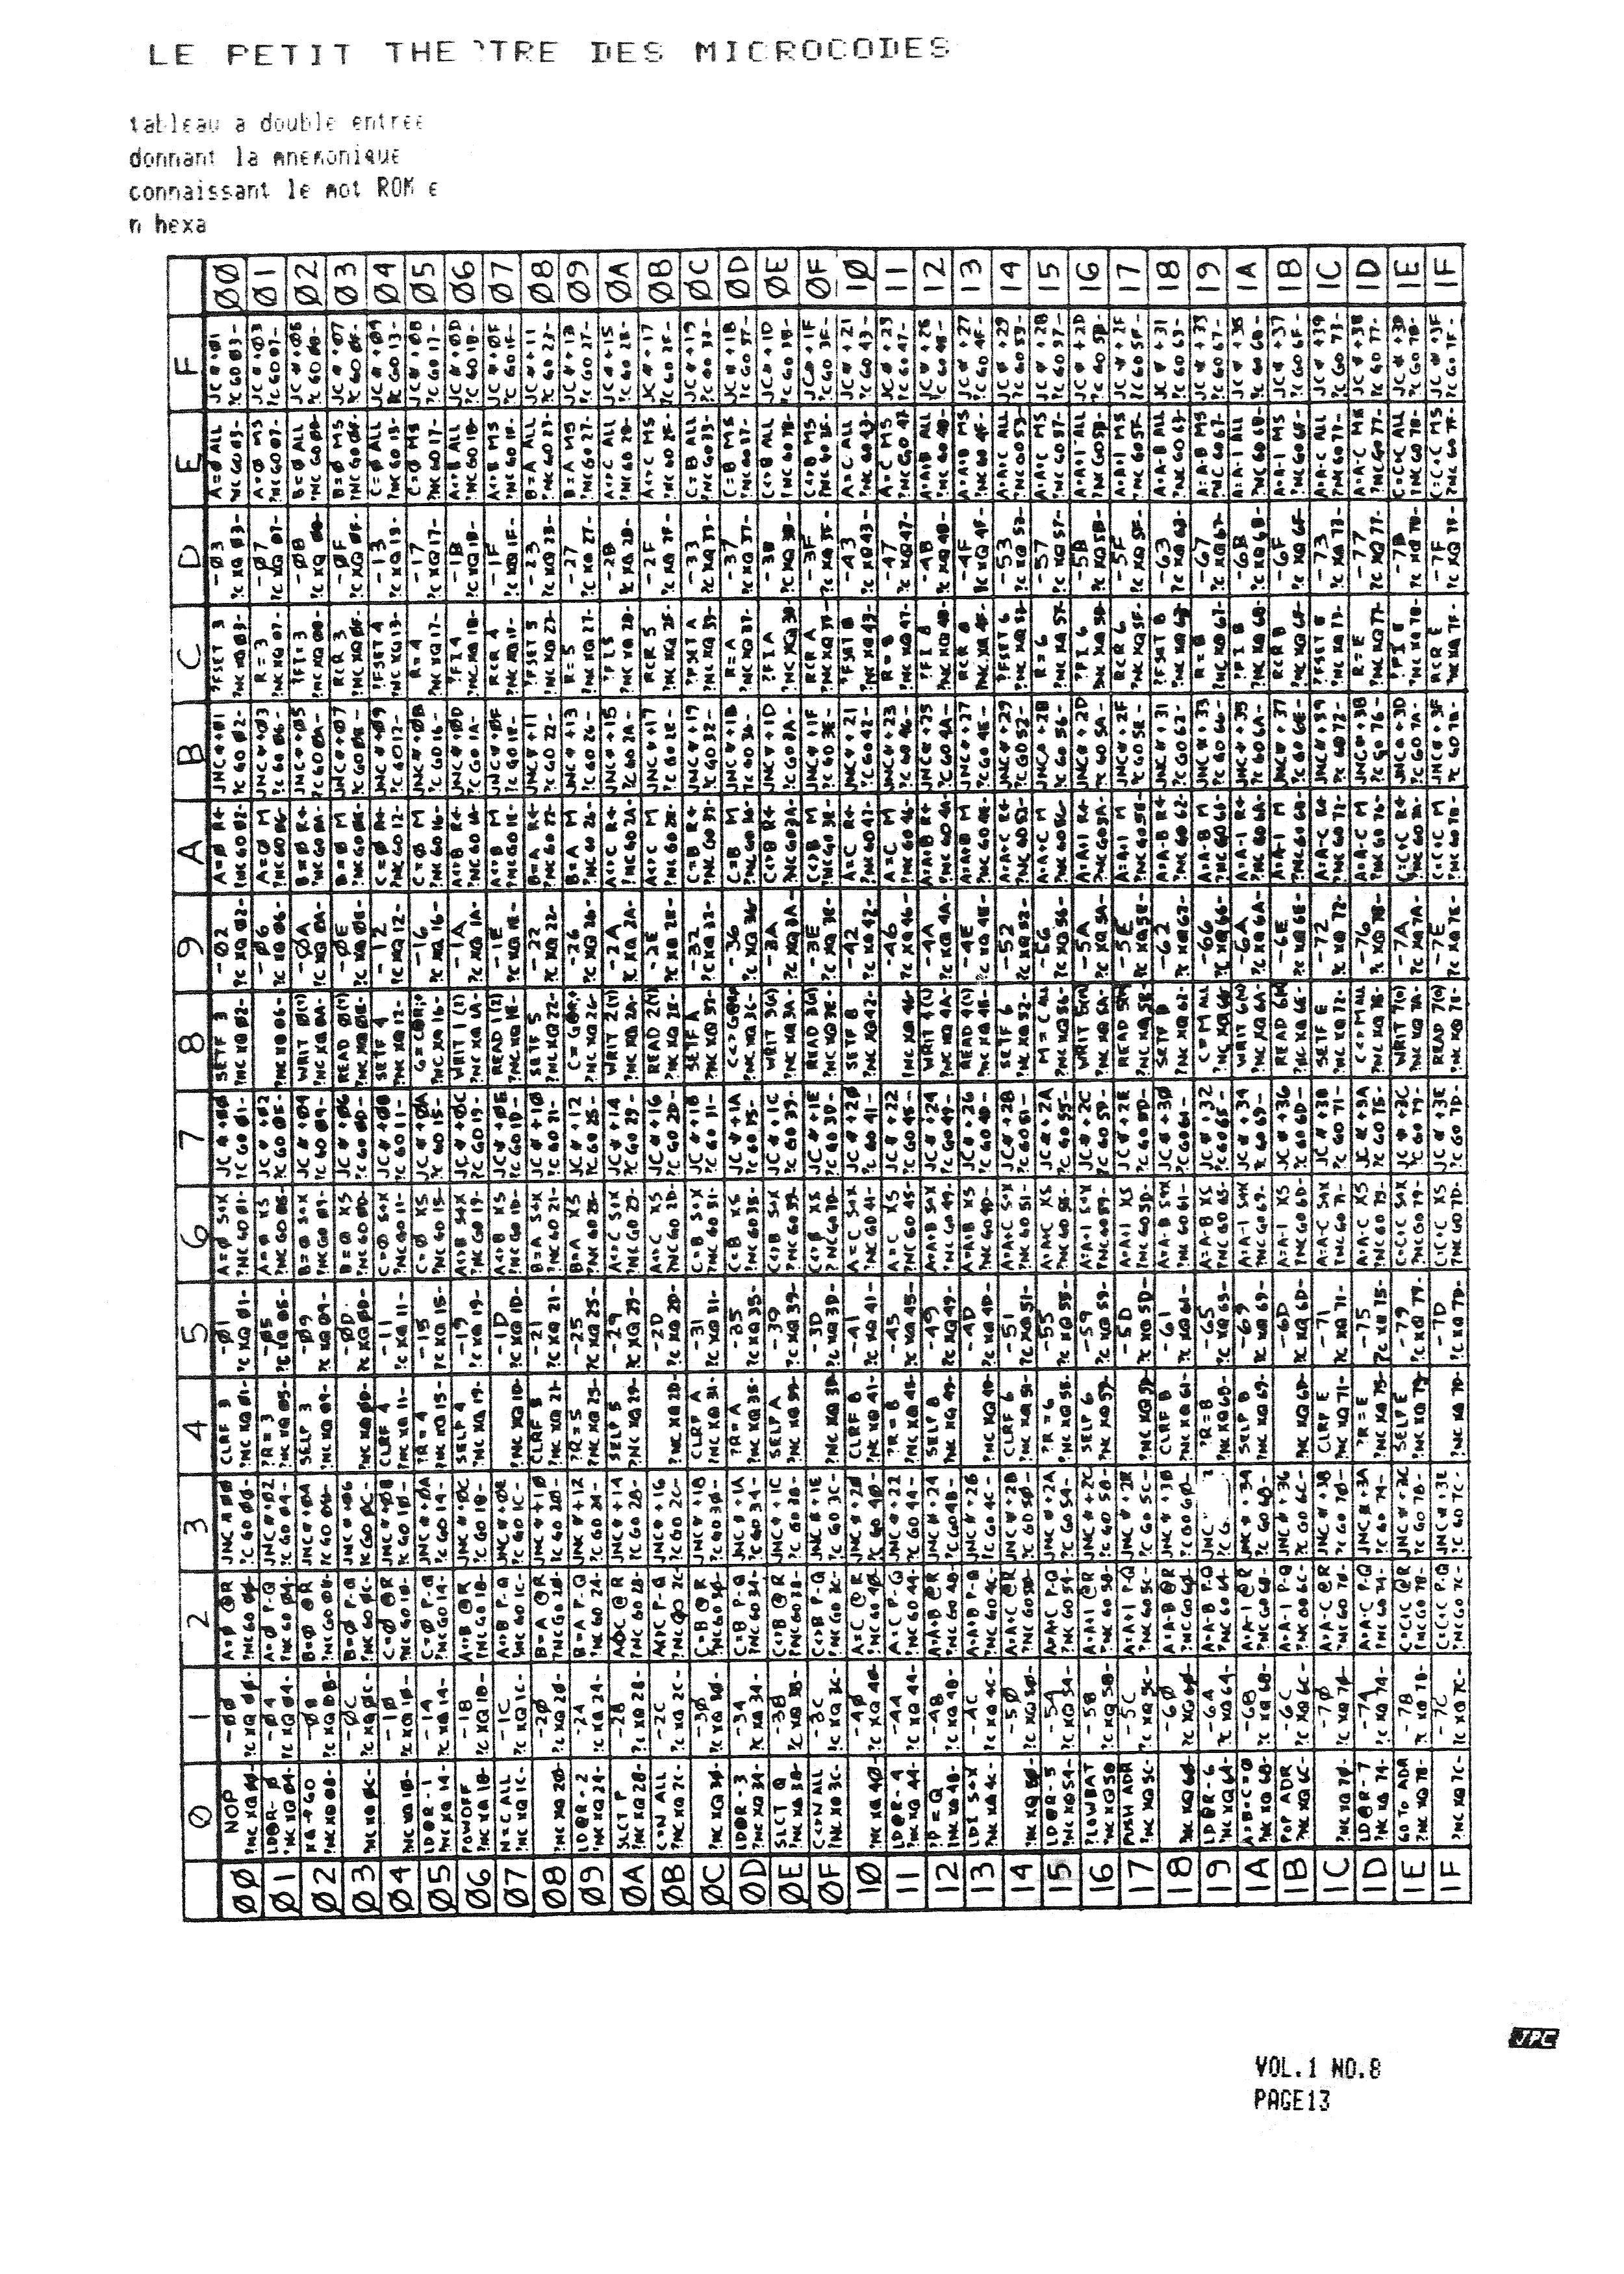 Jp-8-page-13-1000